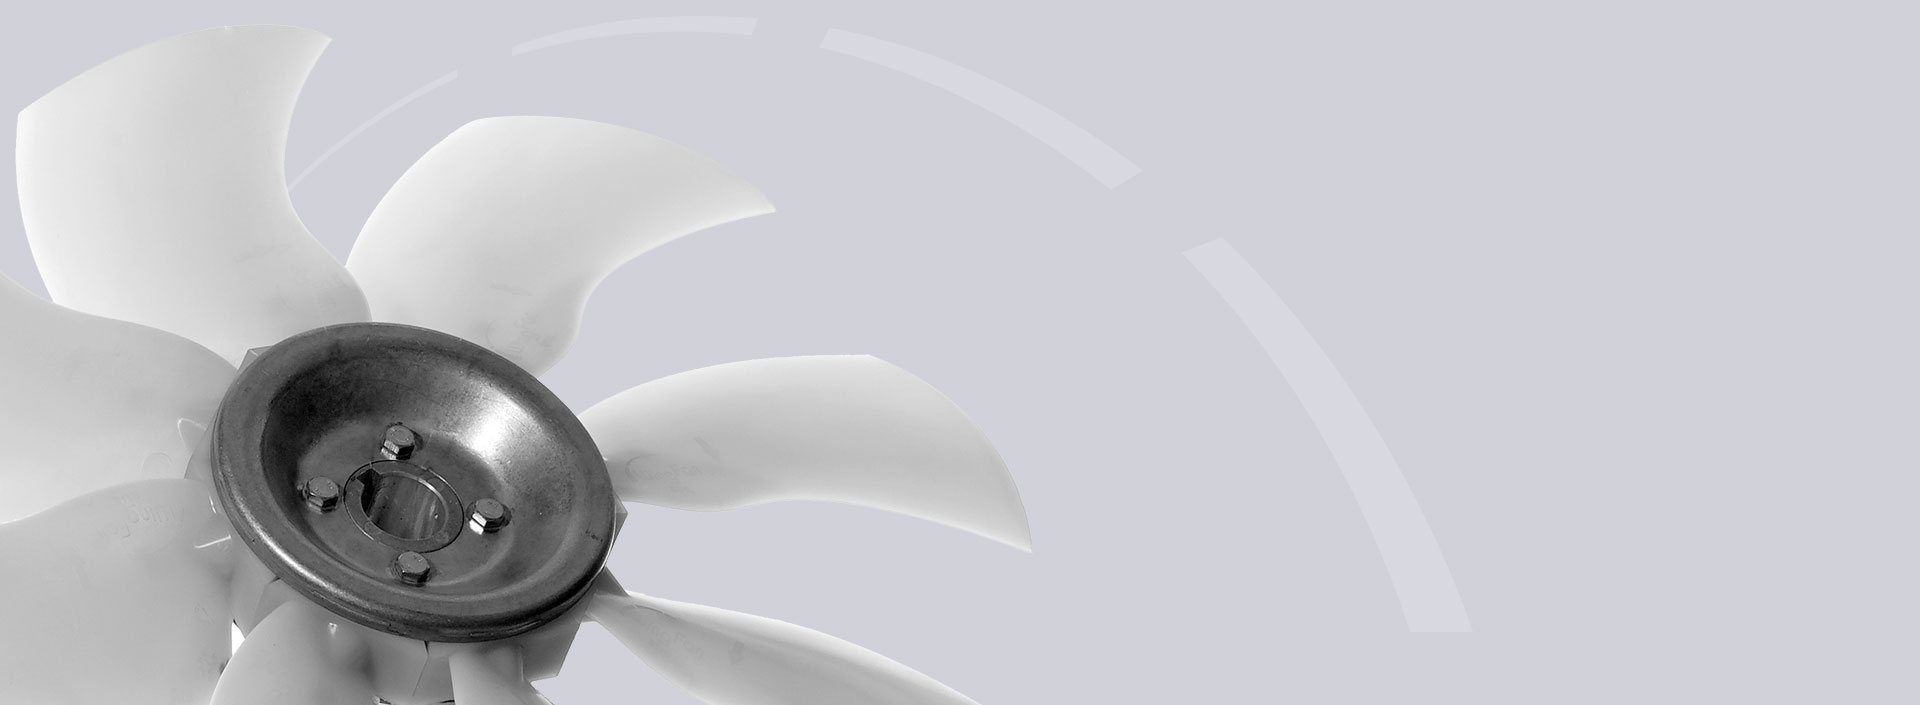 We specialise in Axial Fans for efficient system cooling and ventilation